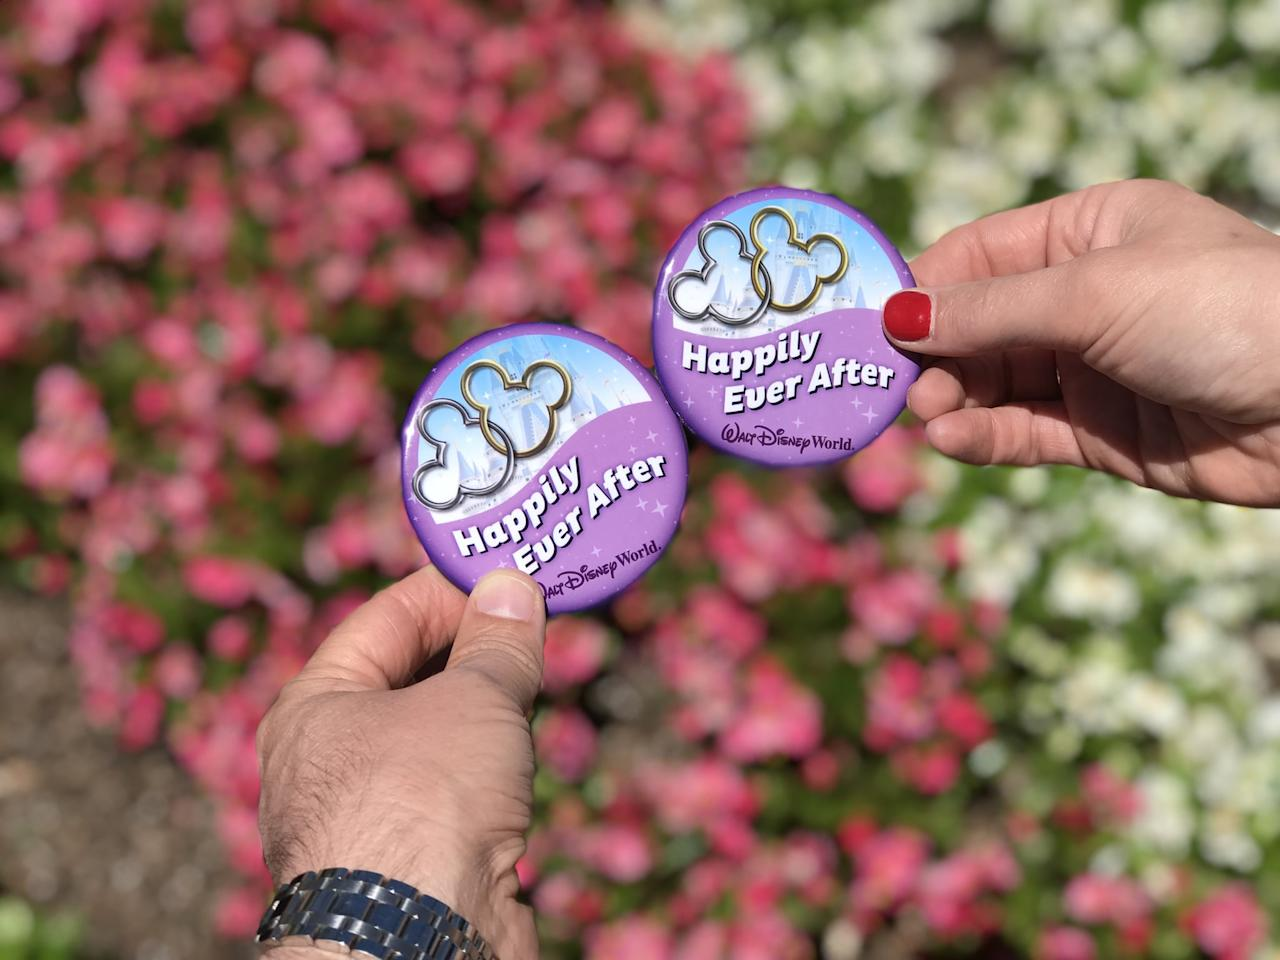 "<p>Disney offers an array of celebratory buttons to guests for free, but the ""Happily Ever After"" ones are the sweetest. In addition to being an adorable item for your outfits and vacation photos, the buttons will bring many ""Congratulations!"" from cast members are fellow parkgoers - and perhaps some fun extras (champagne or desserts at restaurants, for example) if they're feeling generous.</p>"